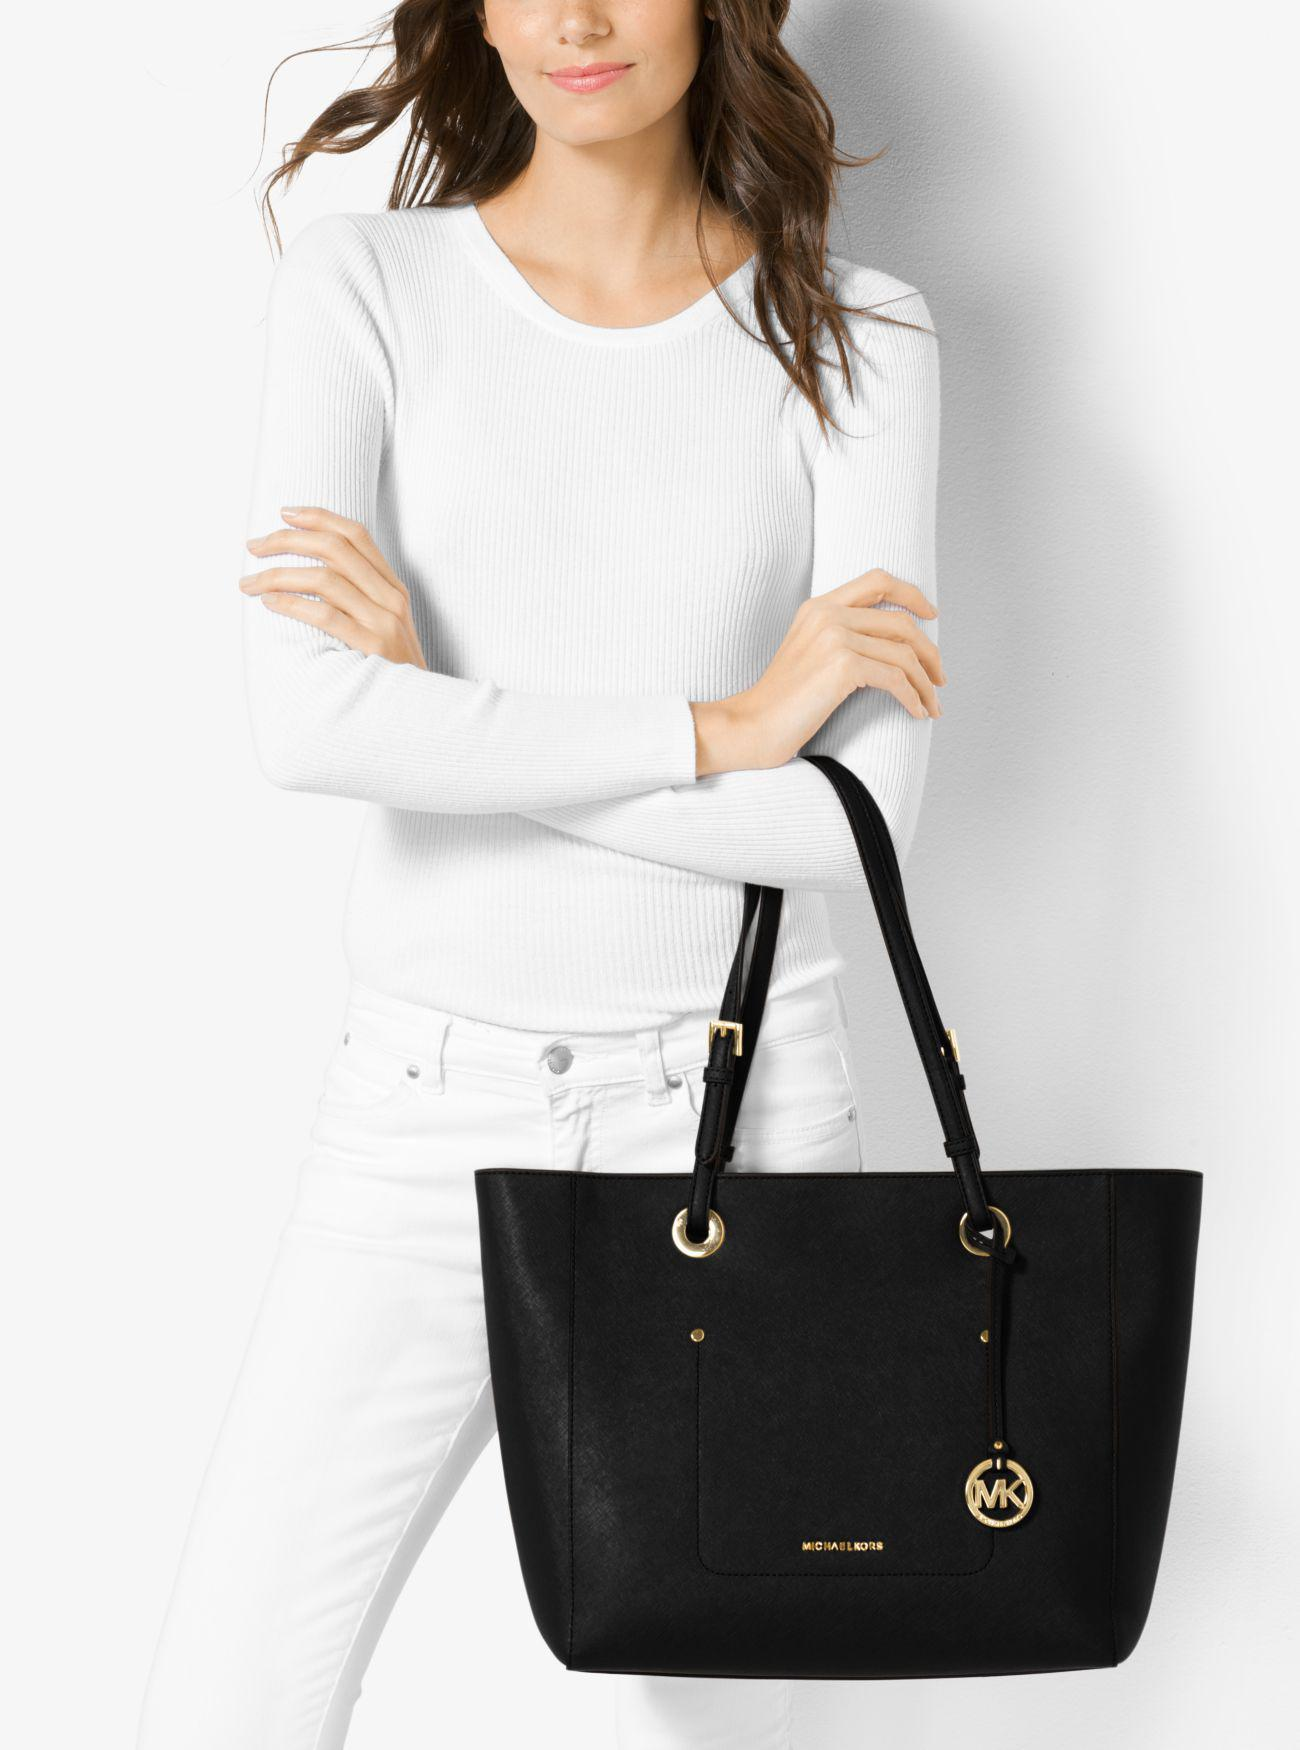 c68f2d4da3fd Walsh Large Saffiano Leather Tote Michael Kors | Stanford Center for ...